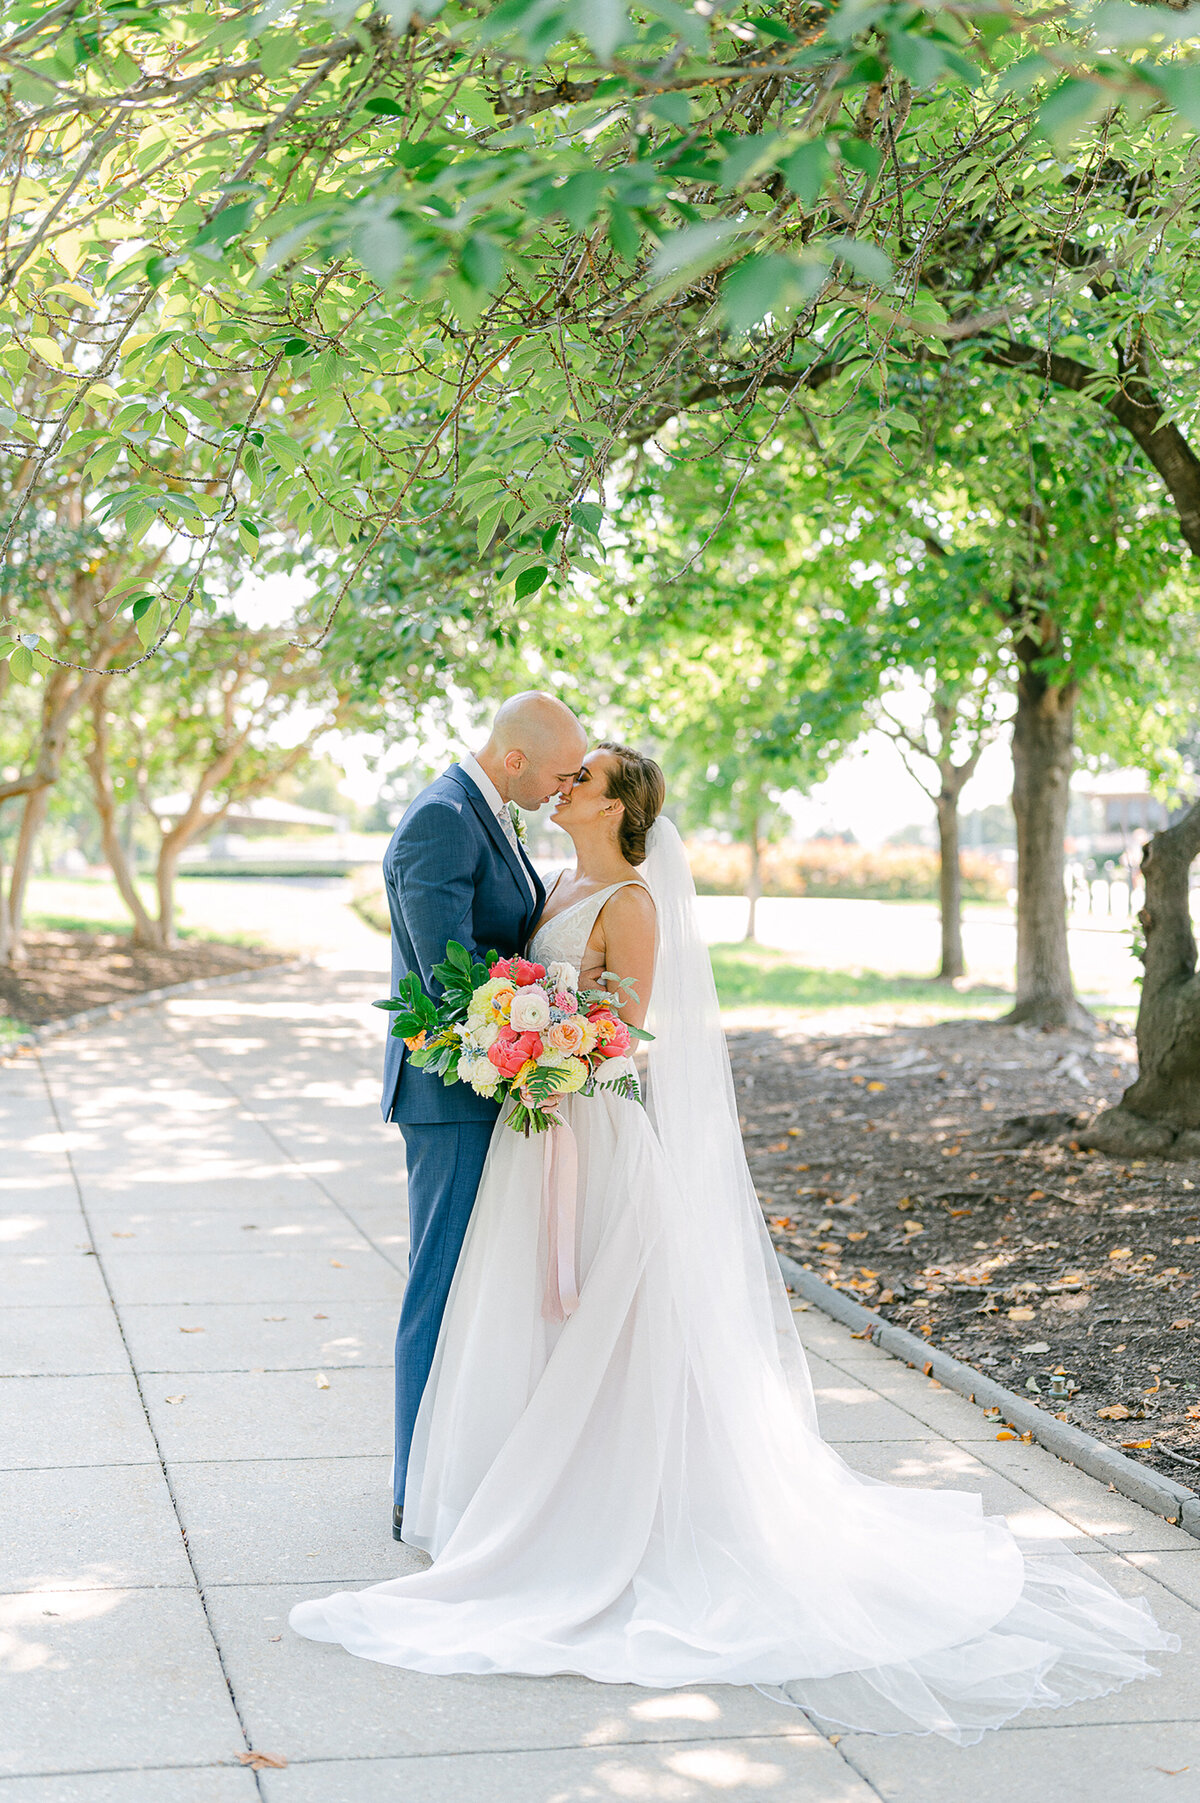 Jennifer Bosak Photography - DC Area Wedding Photography - DC, Virginia, Maryland - Jeanna + Michael - Decatur House Wedding - 66